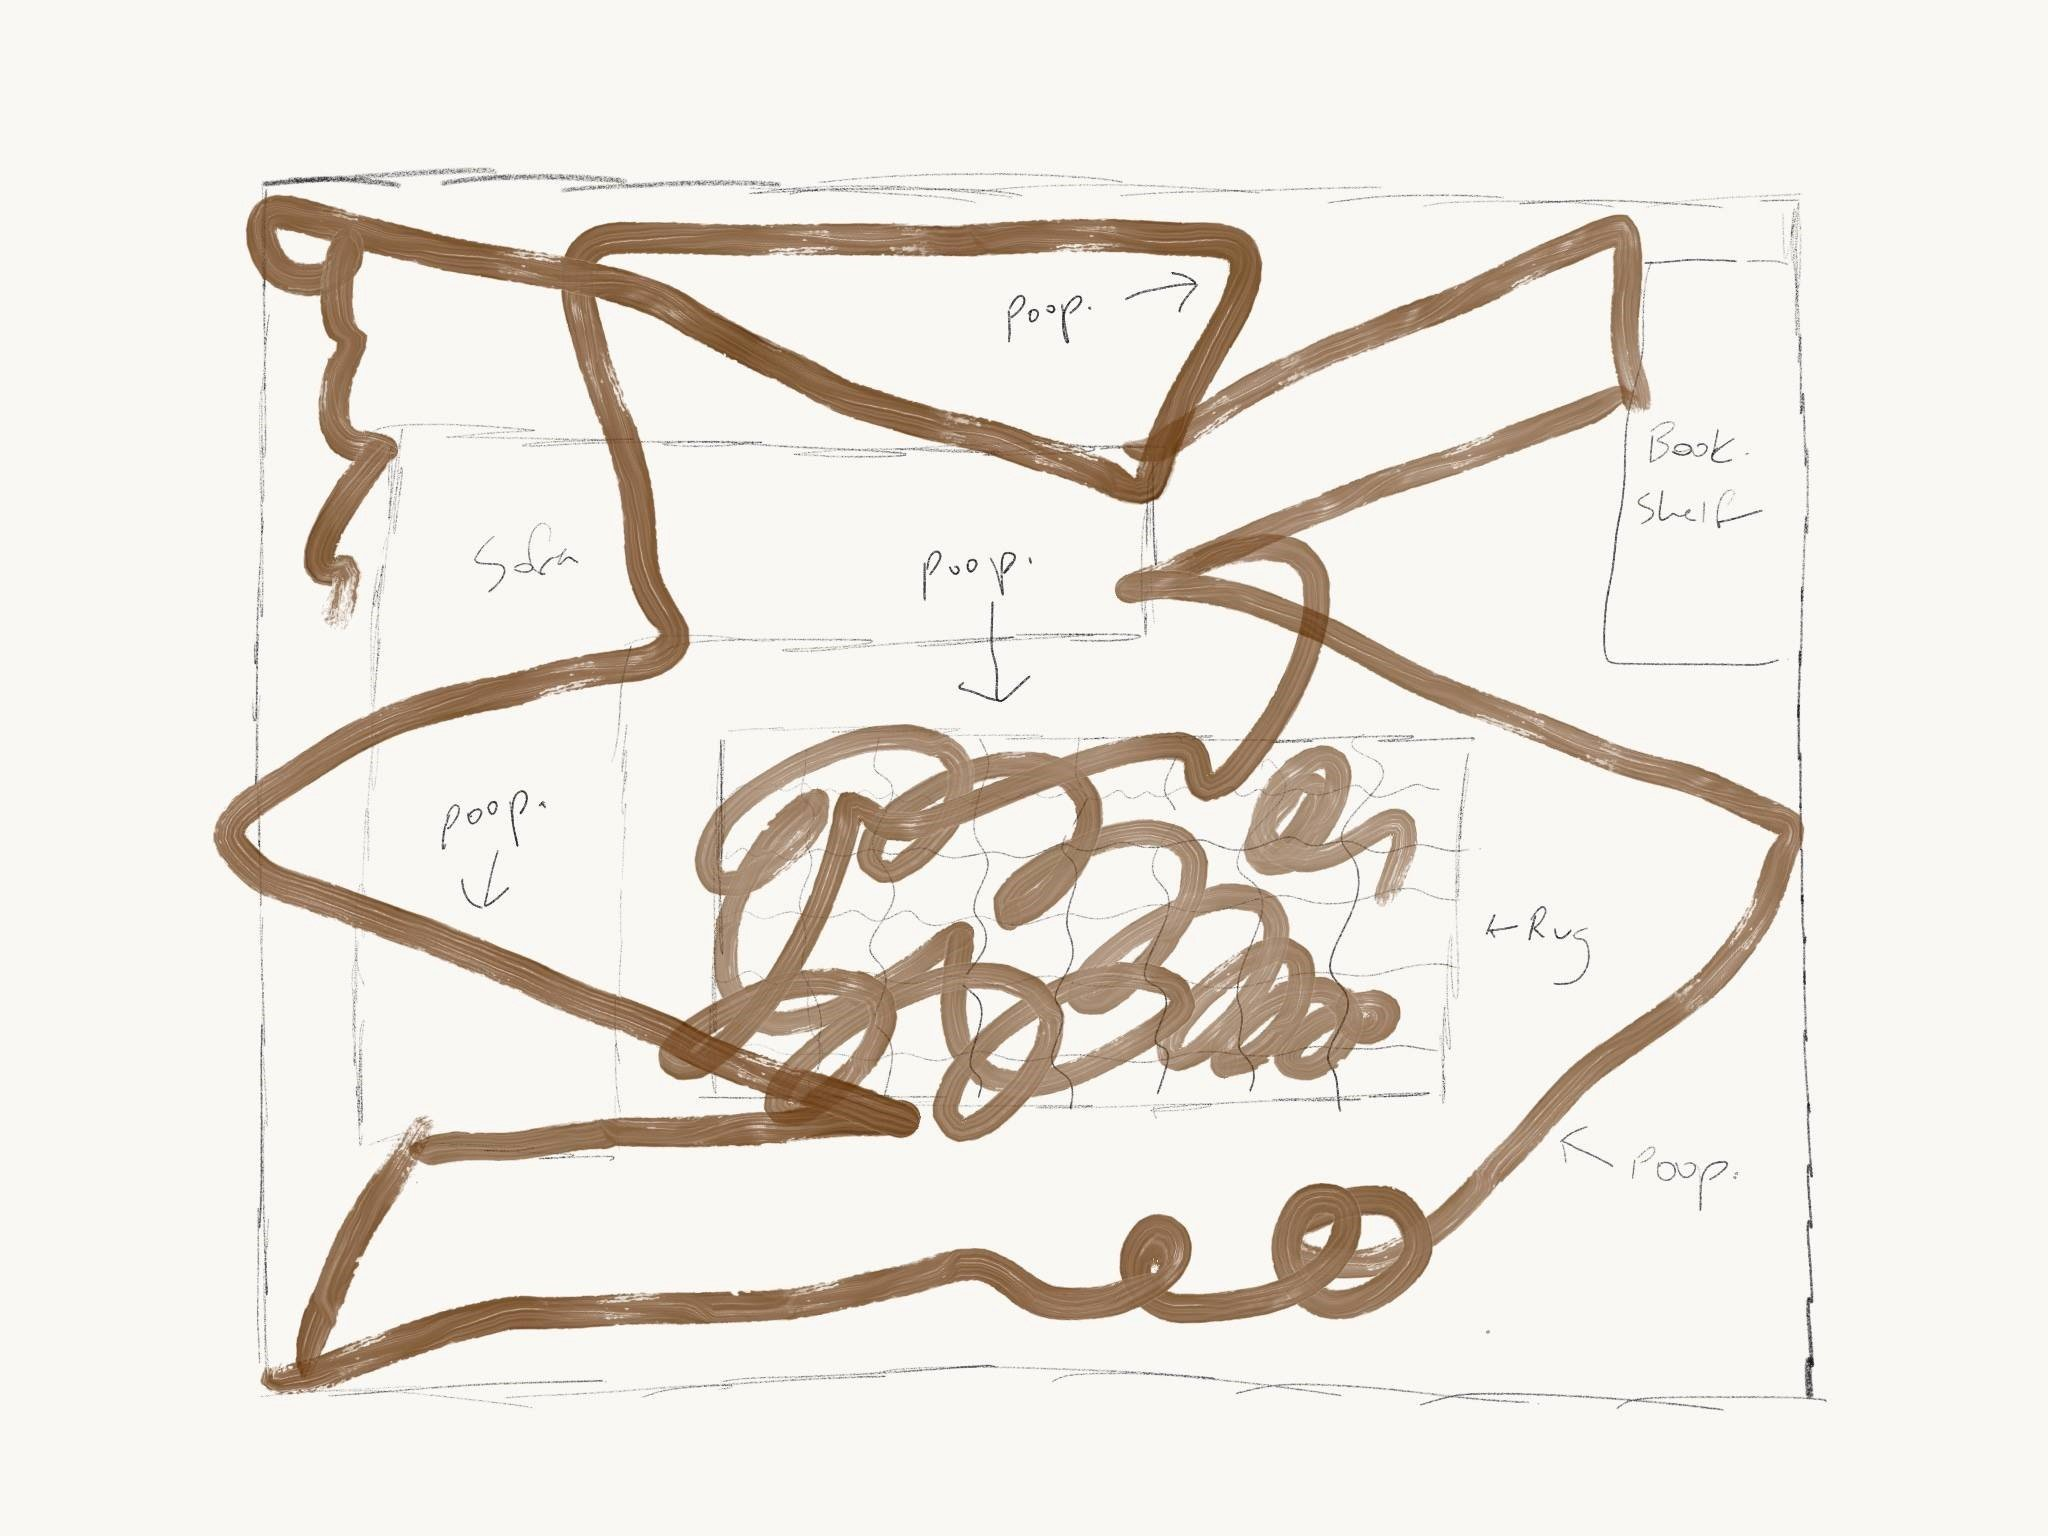 Diagram of What Happens When a Roomba Runs Over Poop